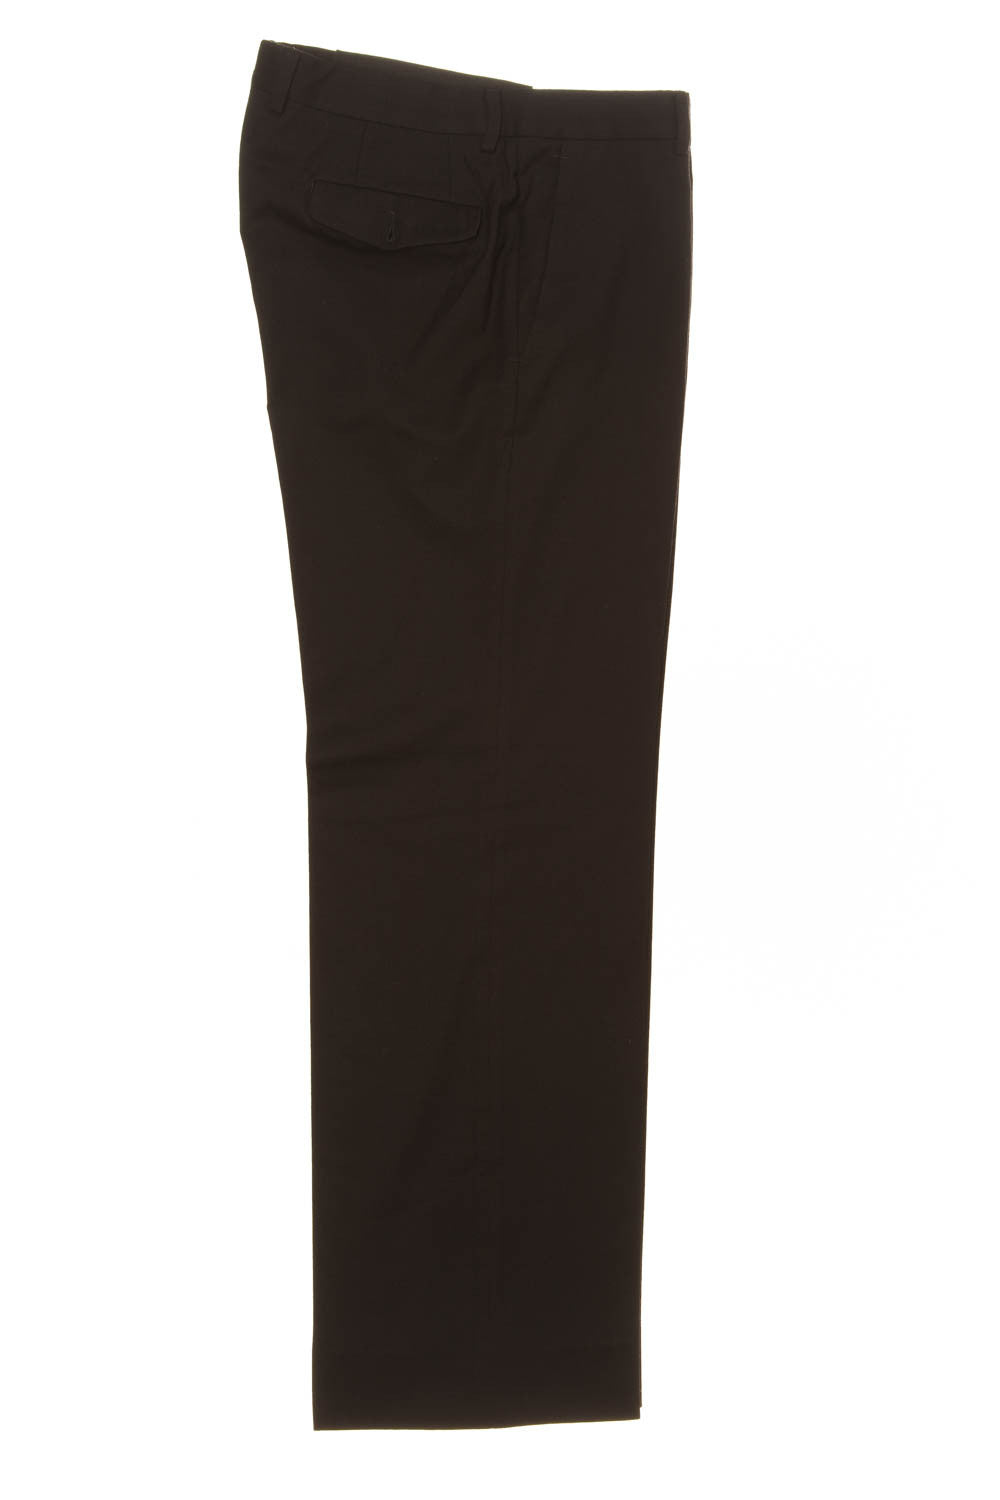 Gucci - Black Cotton Dress Pants